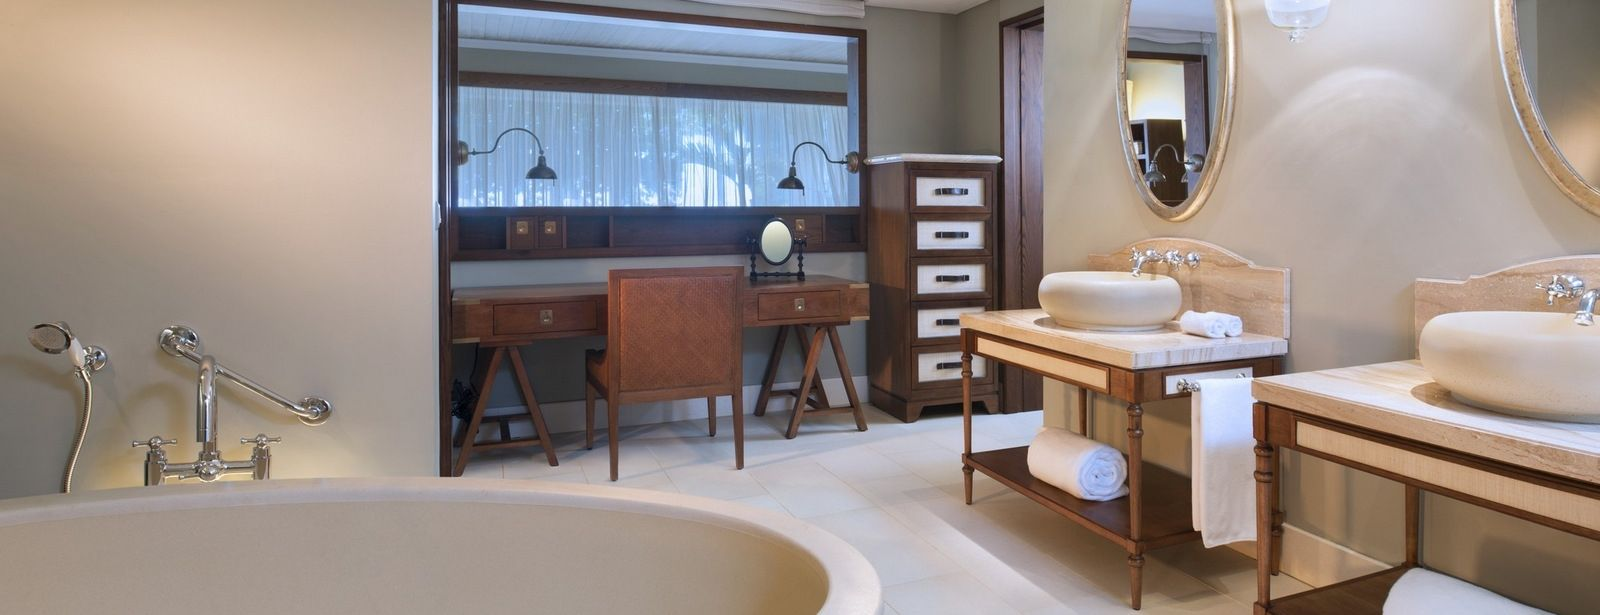 St. Regis Mauritius Ocean facing Junior Suite bathroom